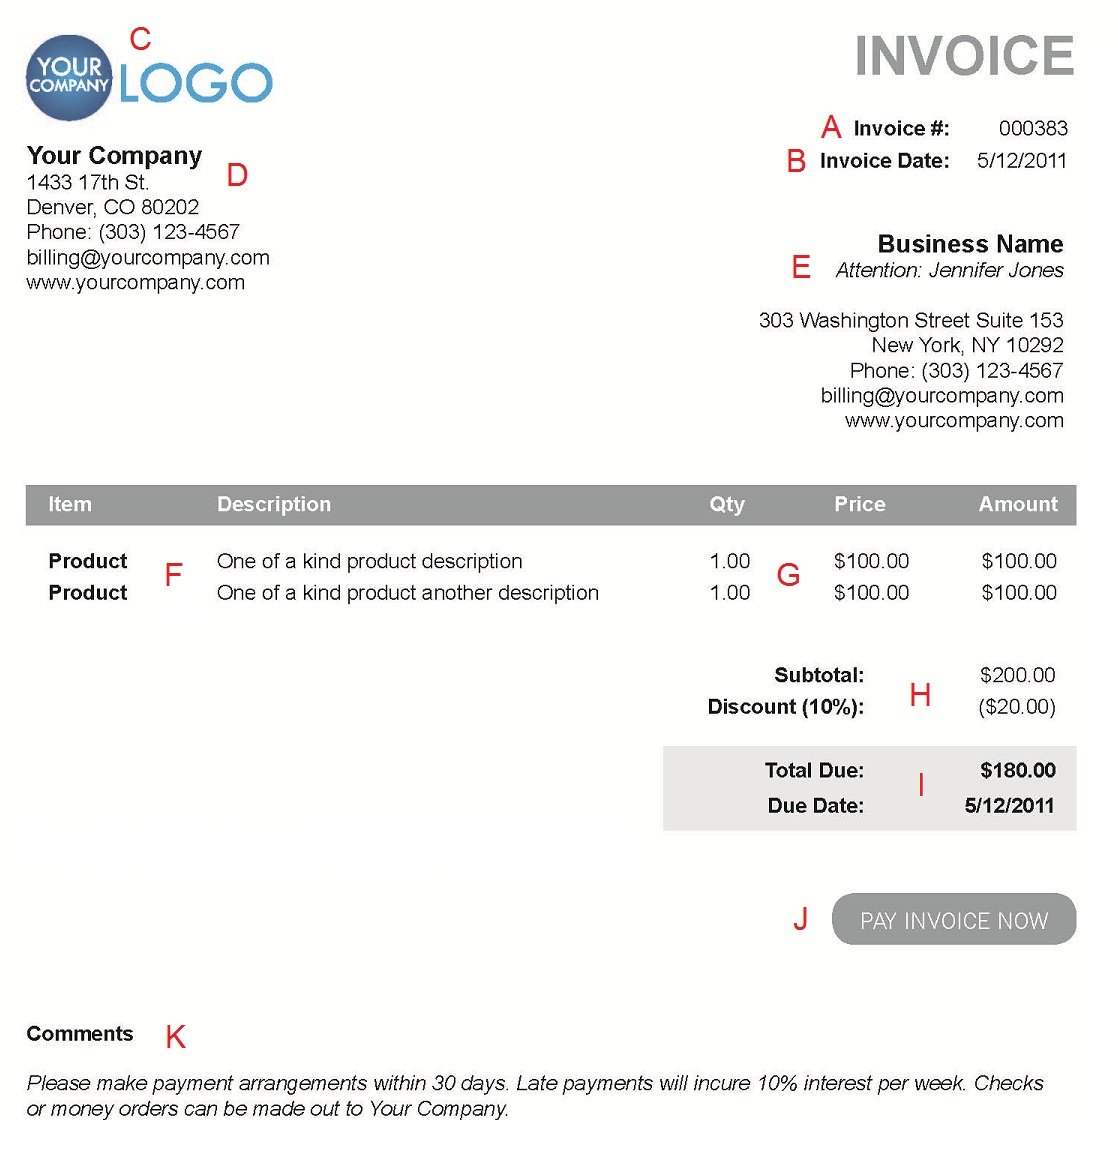 Pigbrotherus  Outstanding The  Different Sections Of An Electronic Payment Invoice With Extraordinary A  With Cute How To Send Invoice On Paypal Also Make An Invoice In Addition Invoice Program And How To Send A Paypal Invoice As Well As Invoice Vs Msrp Additionally Invoice Pdf From Paysimplecom With Pigbrotherus  Extraordinary The  Different Sections Of An Electronic Payment Invoice With Cute A  And Outstanding How To Send Invoice On Paypal Also Make An Invoice In Addition Invoice Program From Paysimplecom